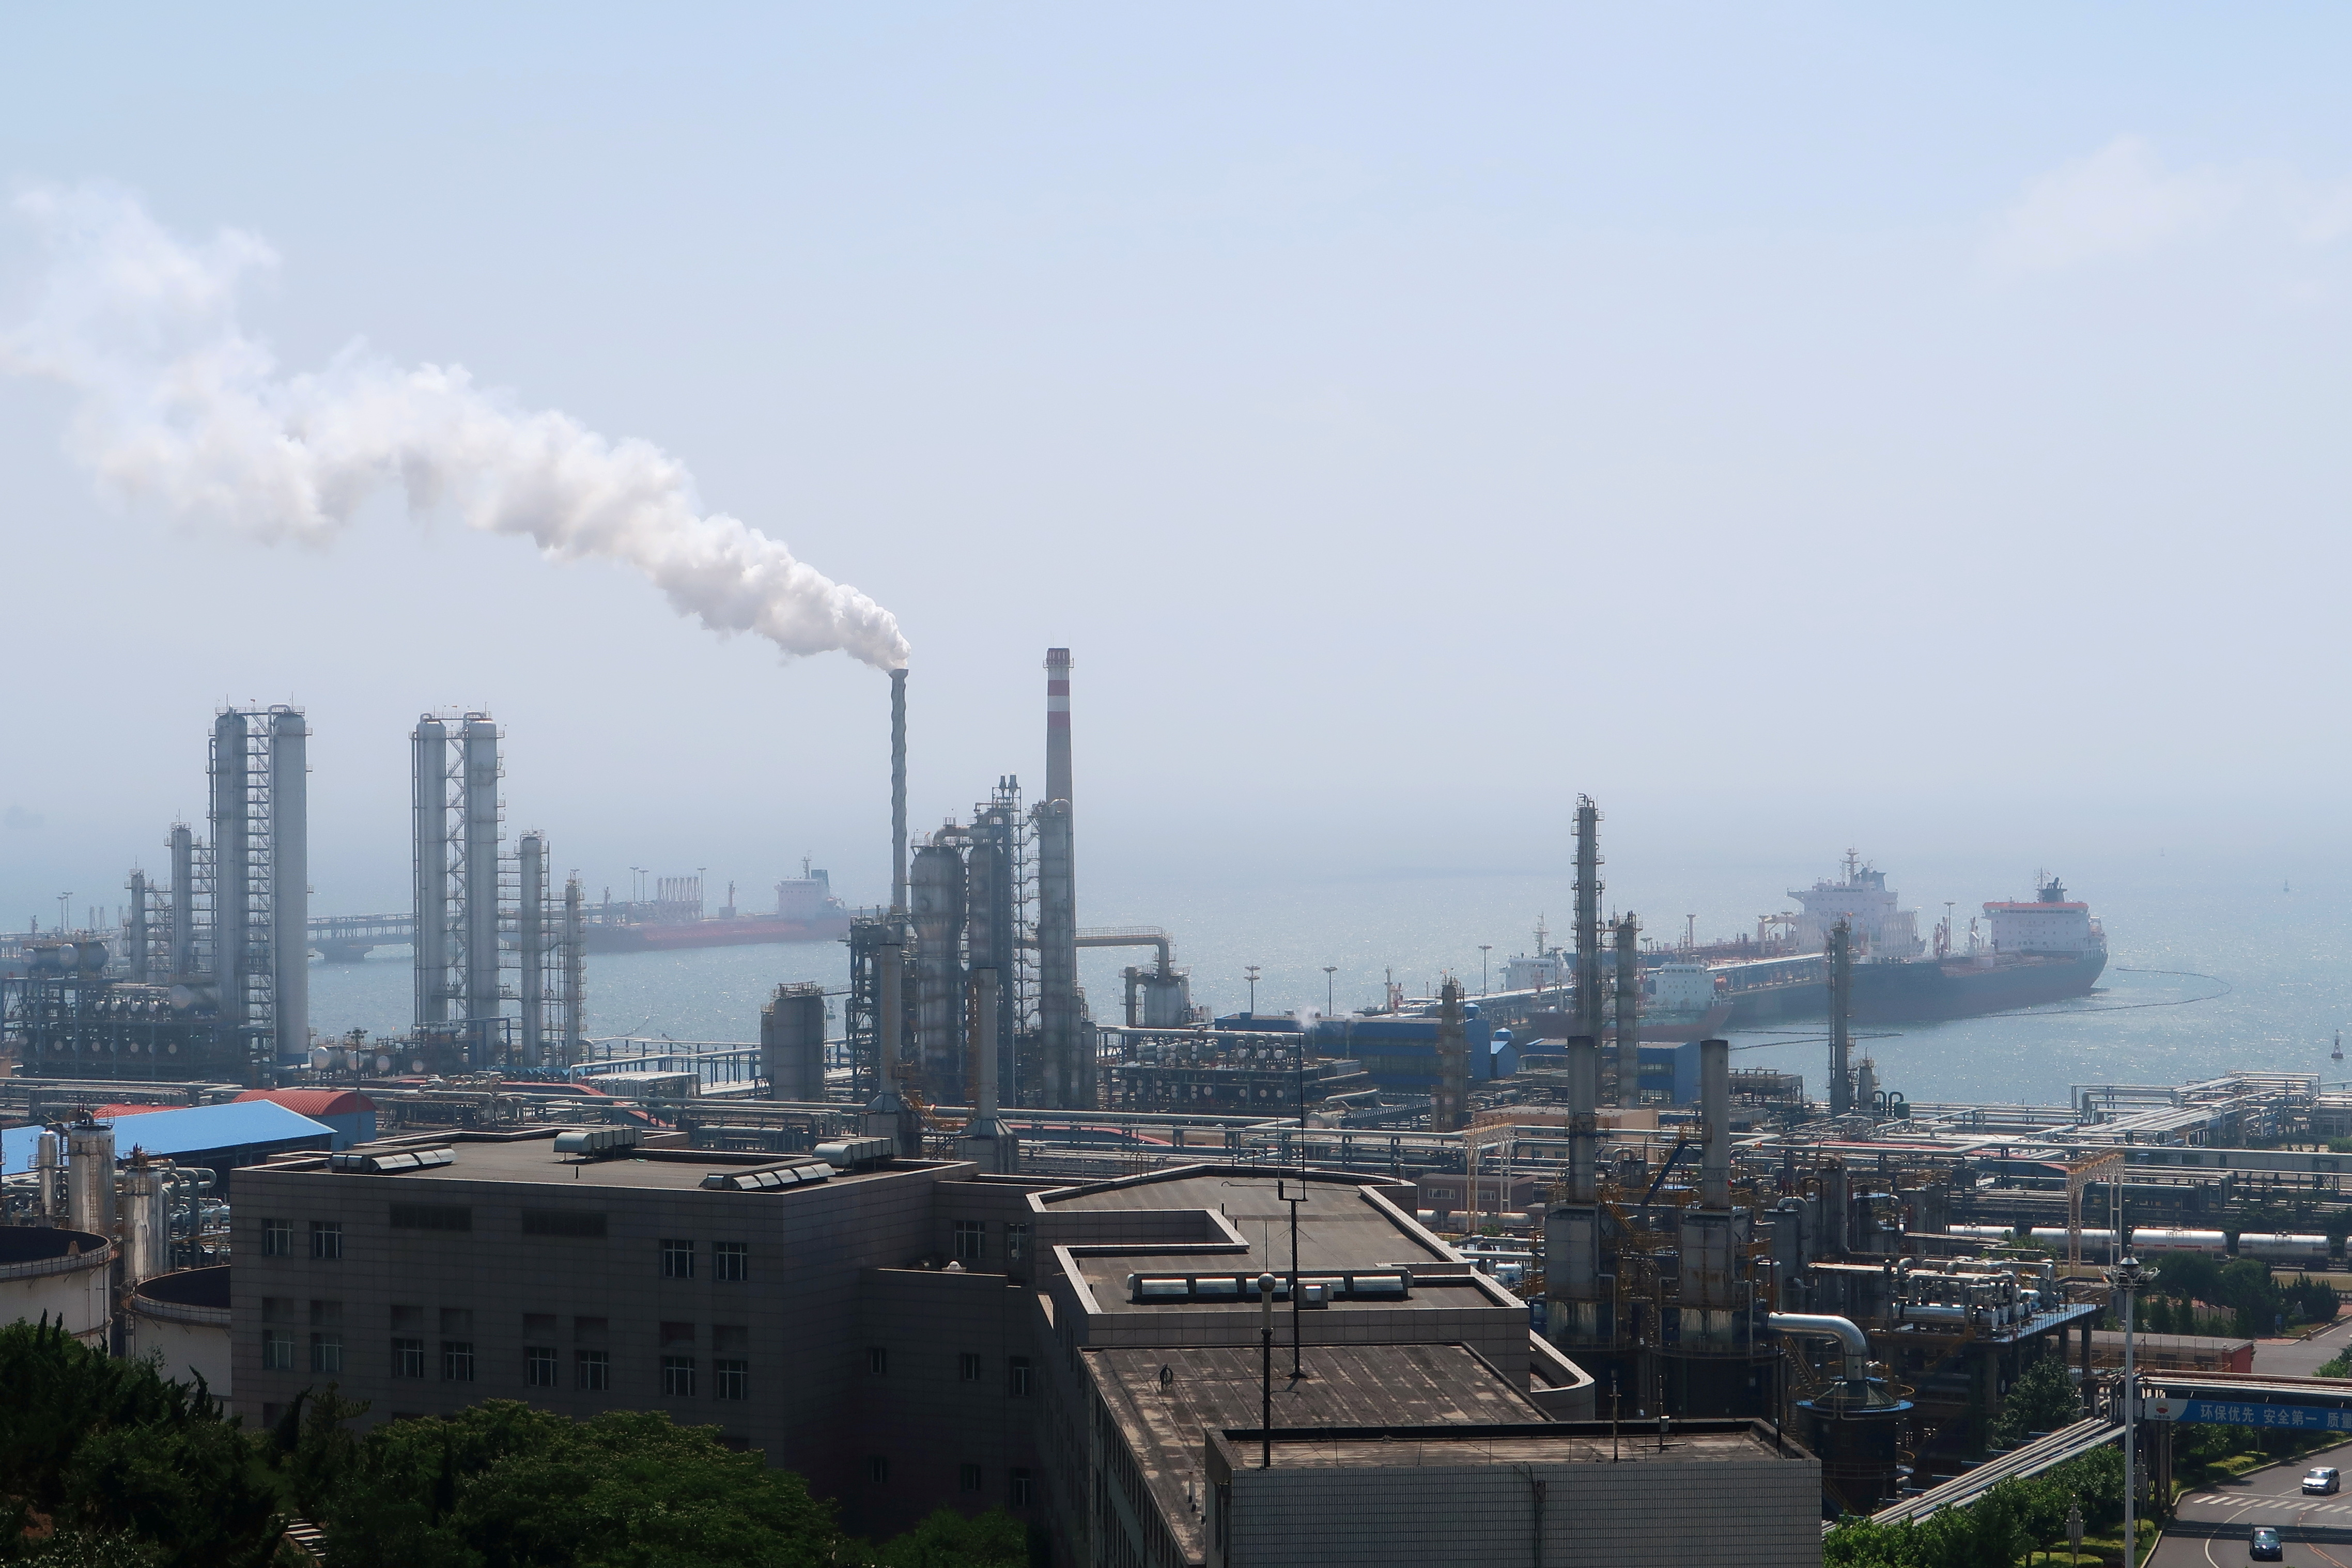 China National Petroleum Corporation (CNPC)'s Dalian Petrochemical Corp refinery is seen near the downtown of Dalian in Liaoning province, China July 17, 2018. Picture taken July 17, 2018. REUTERS/Chen Aizhu/File Photo